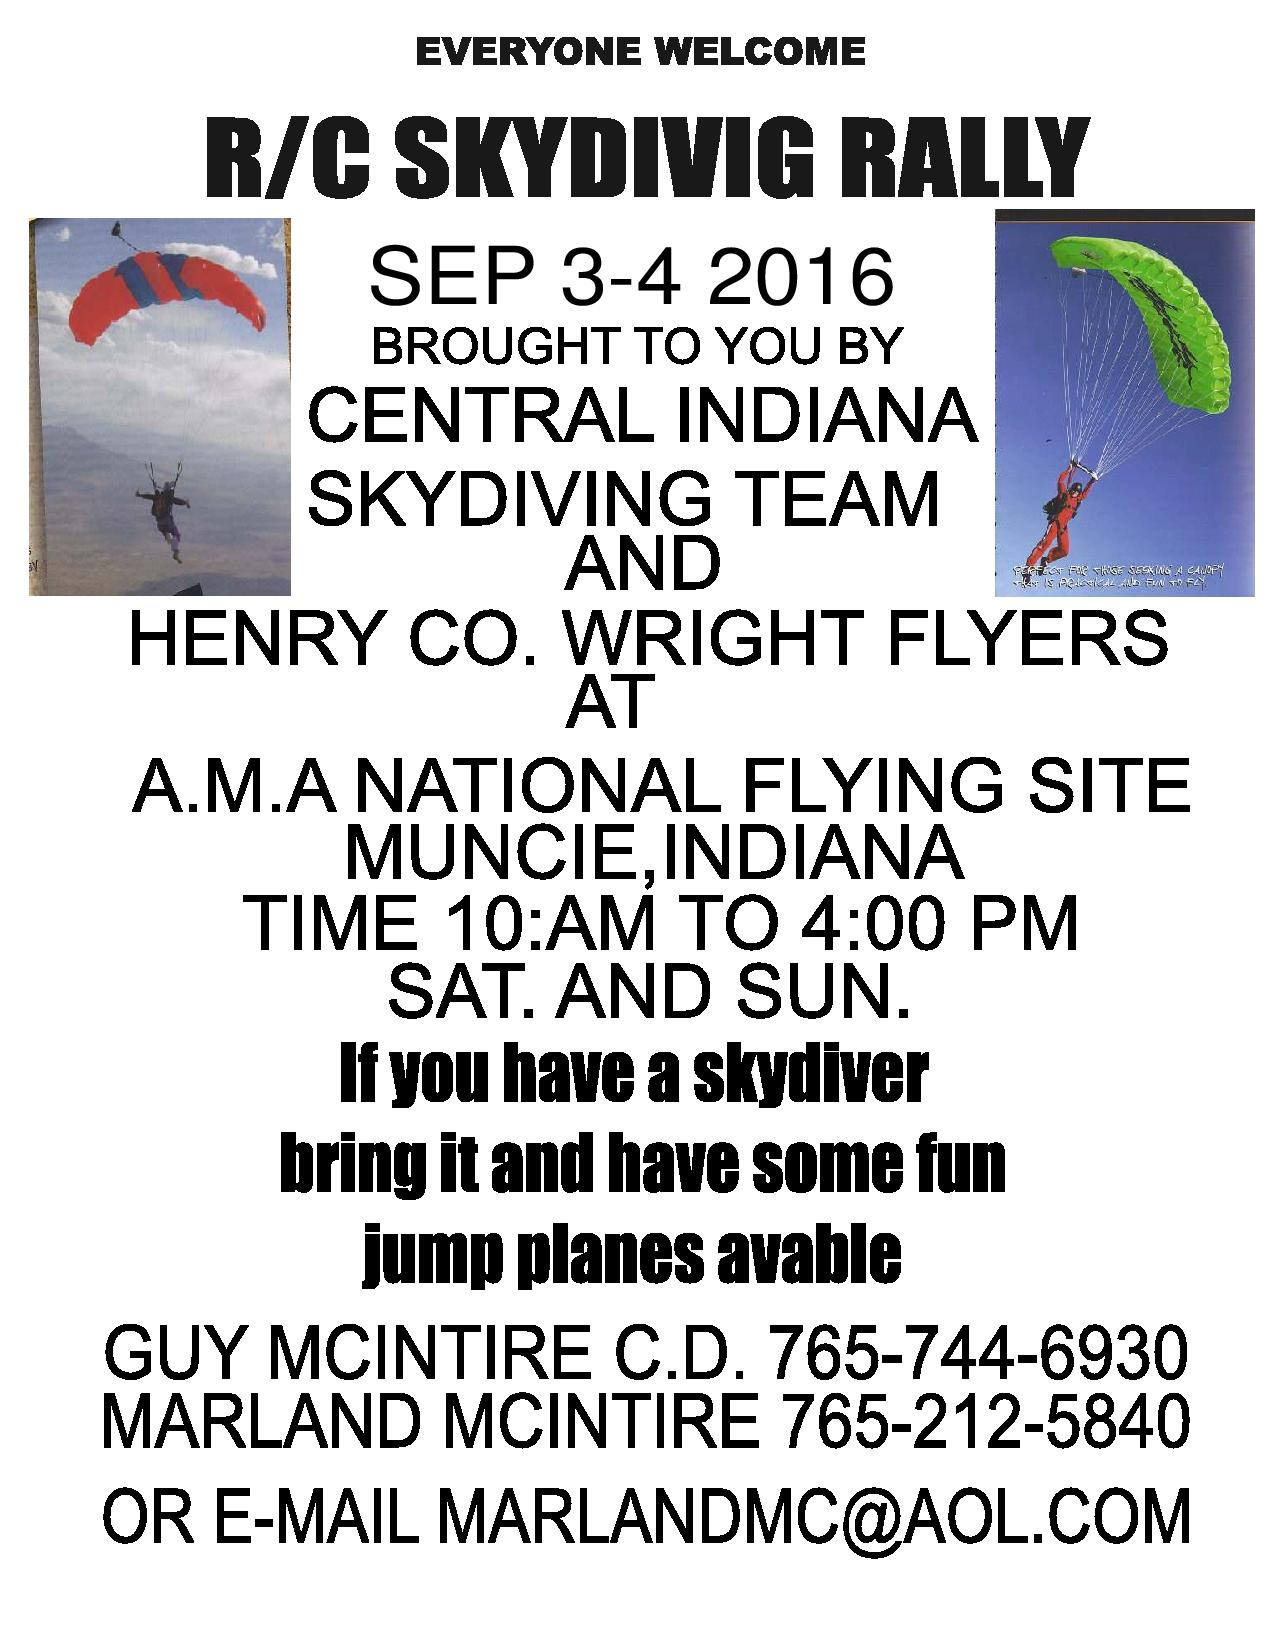 Click image for larger version  Name:fyler newskydiving16_1-page-001.jpg Views:182 Size:276.6 KB ID:2157985